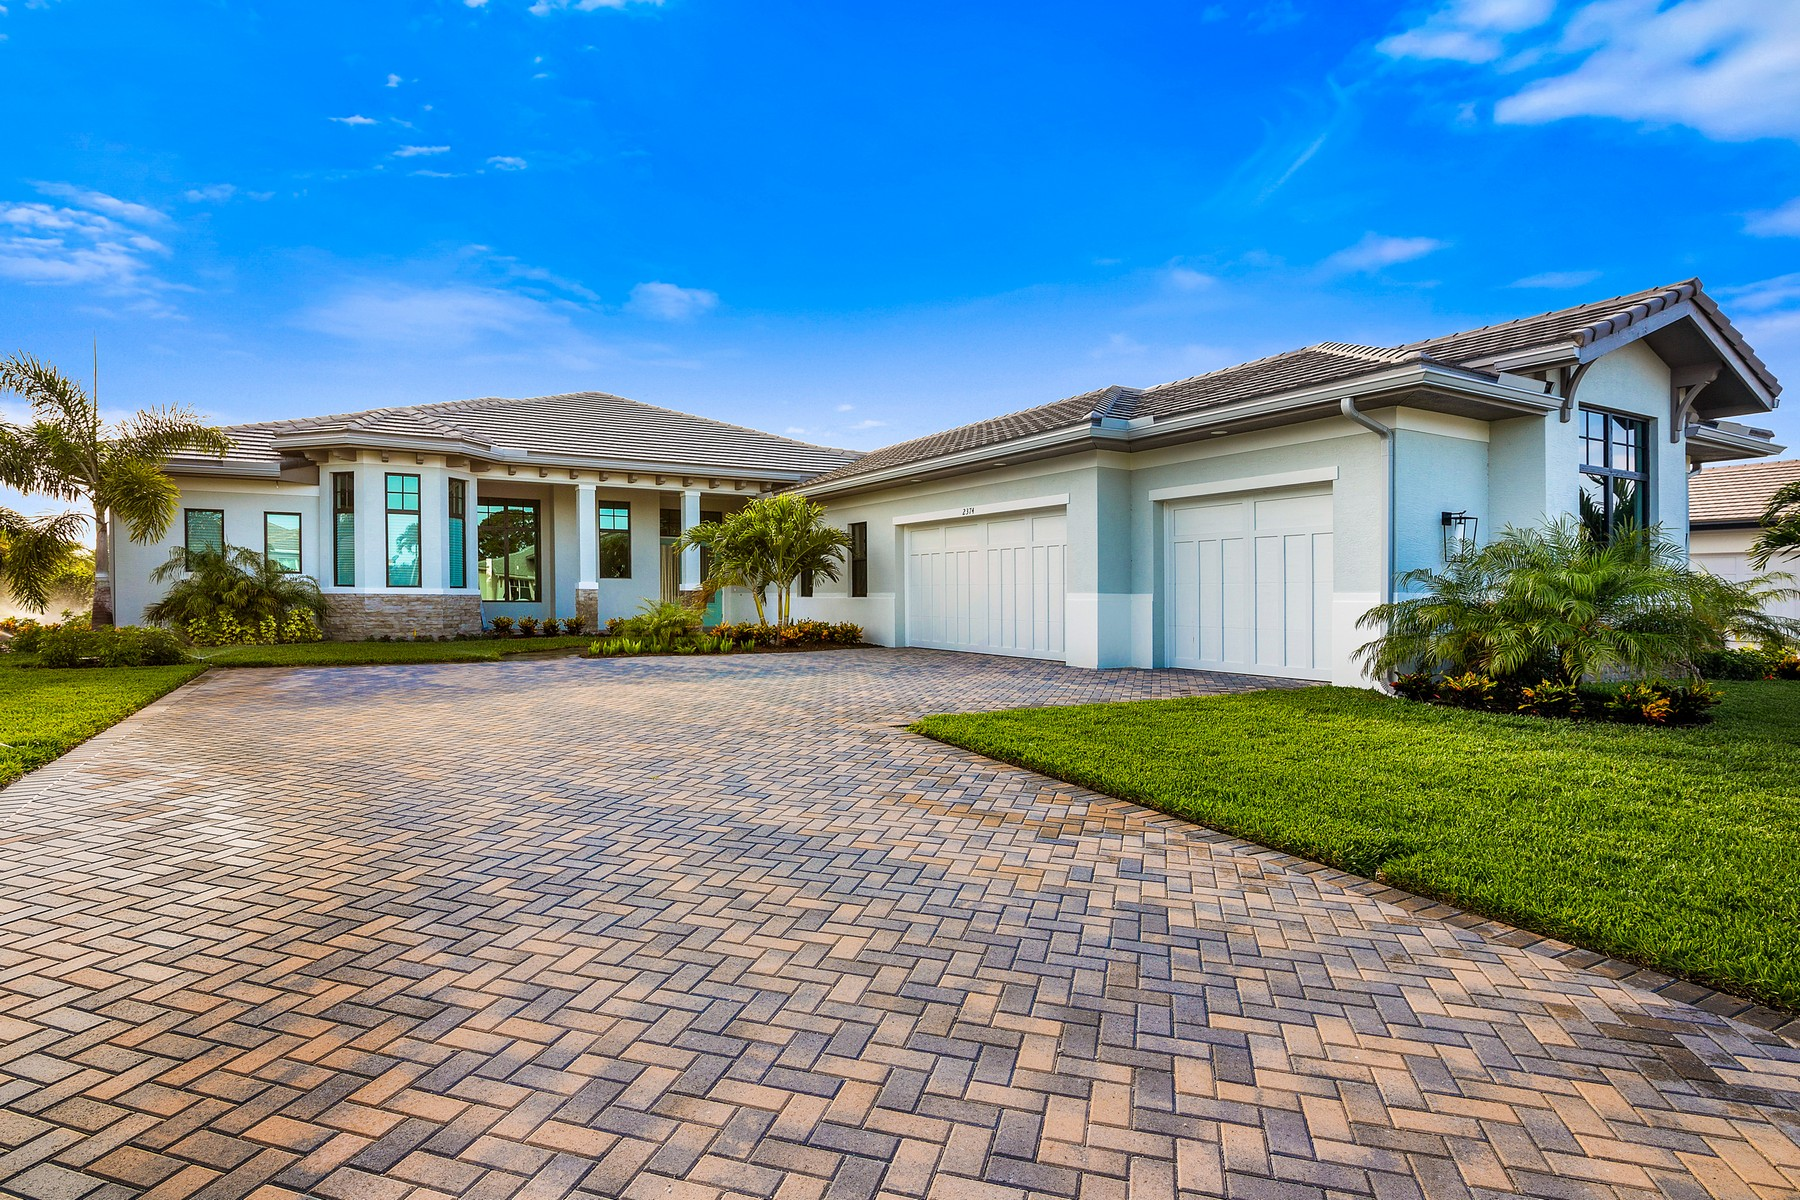 Single Family Homes のために 売買 アット Luxury New Construction in Grand Harbor 2344 Grand Harbor Reserve Square Vero Beach, フロリダ 32967 アメリカ